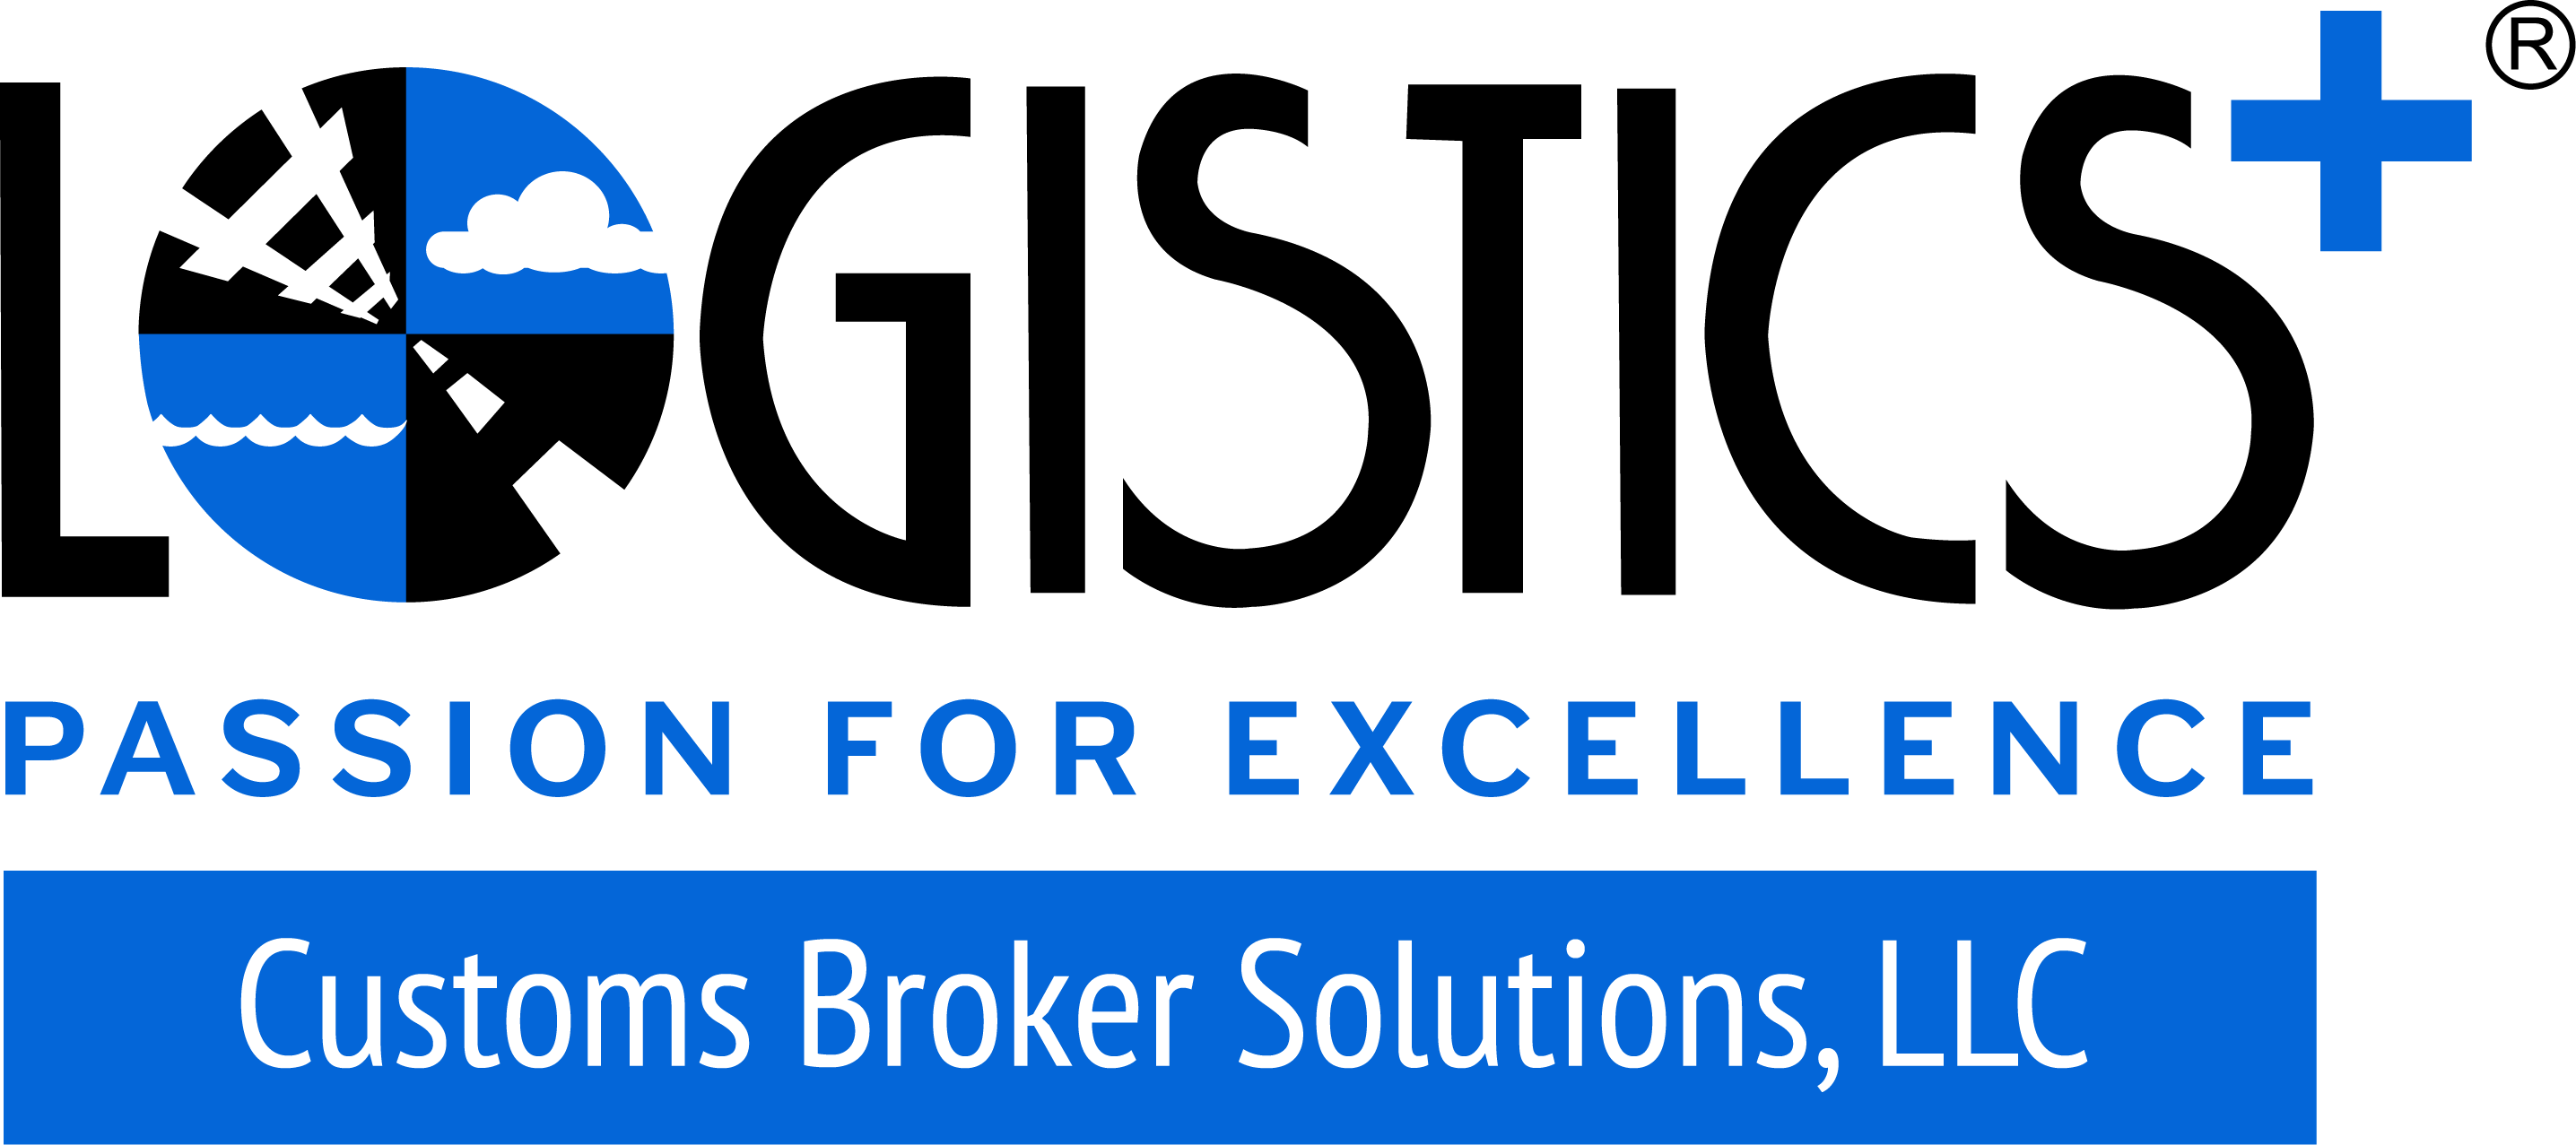 lp-customs-broker-solutions-llc